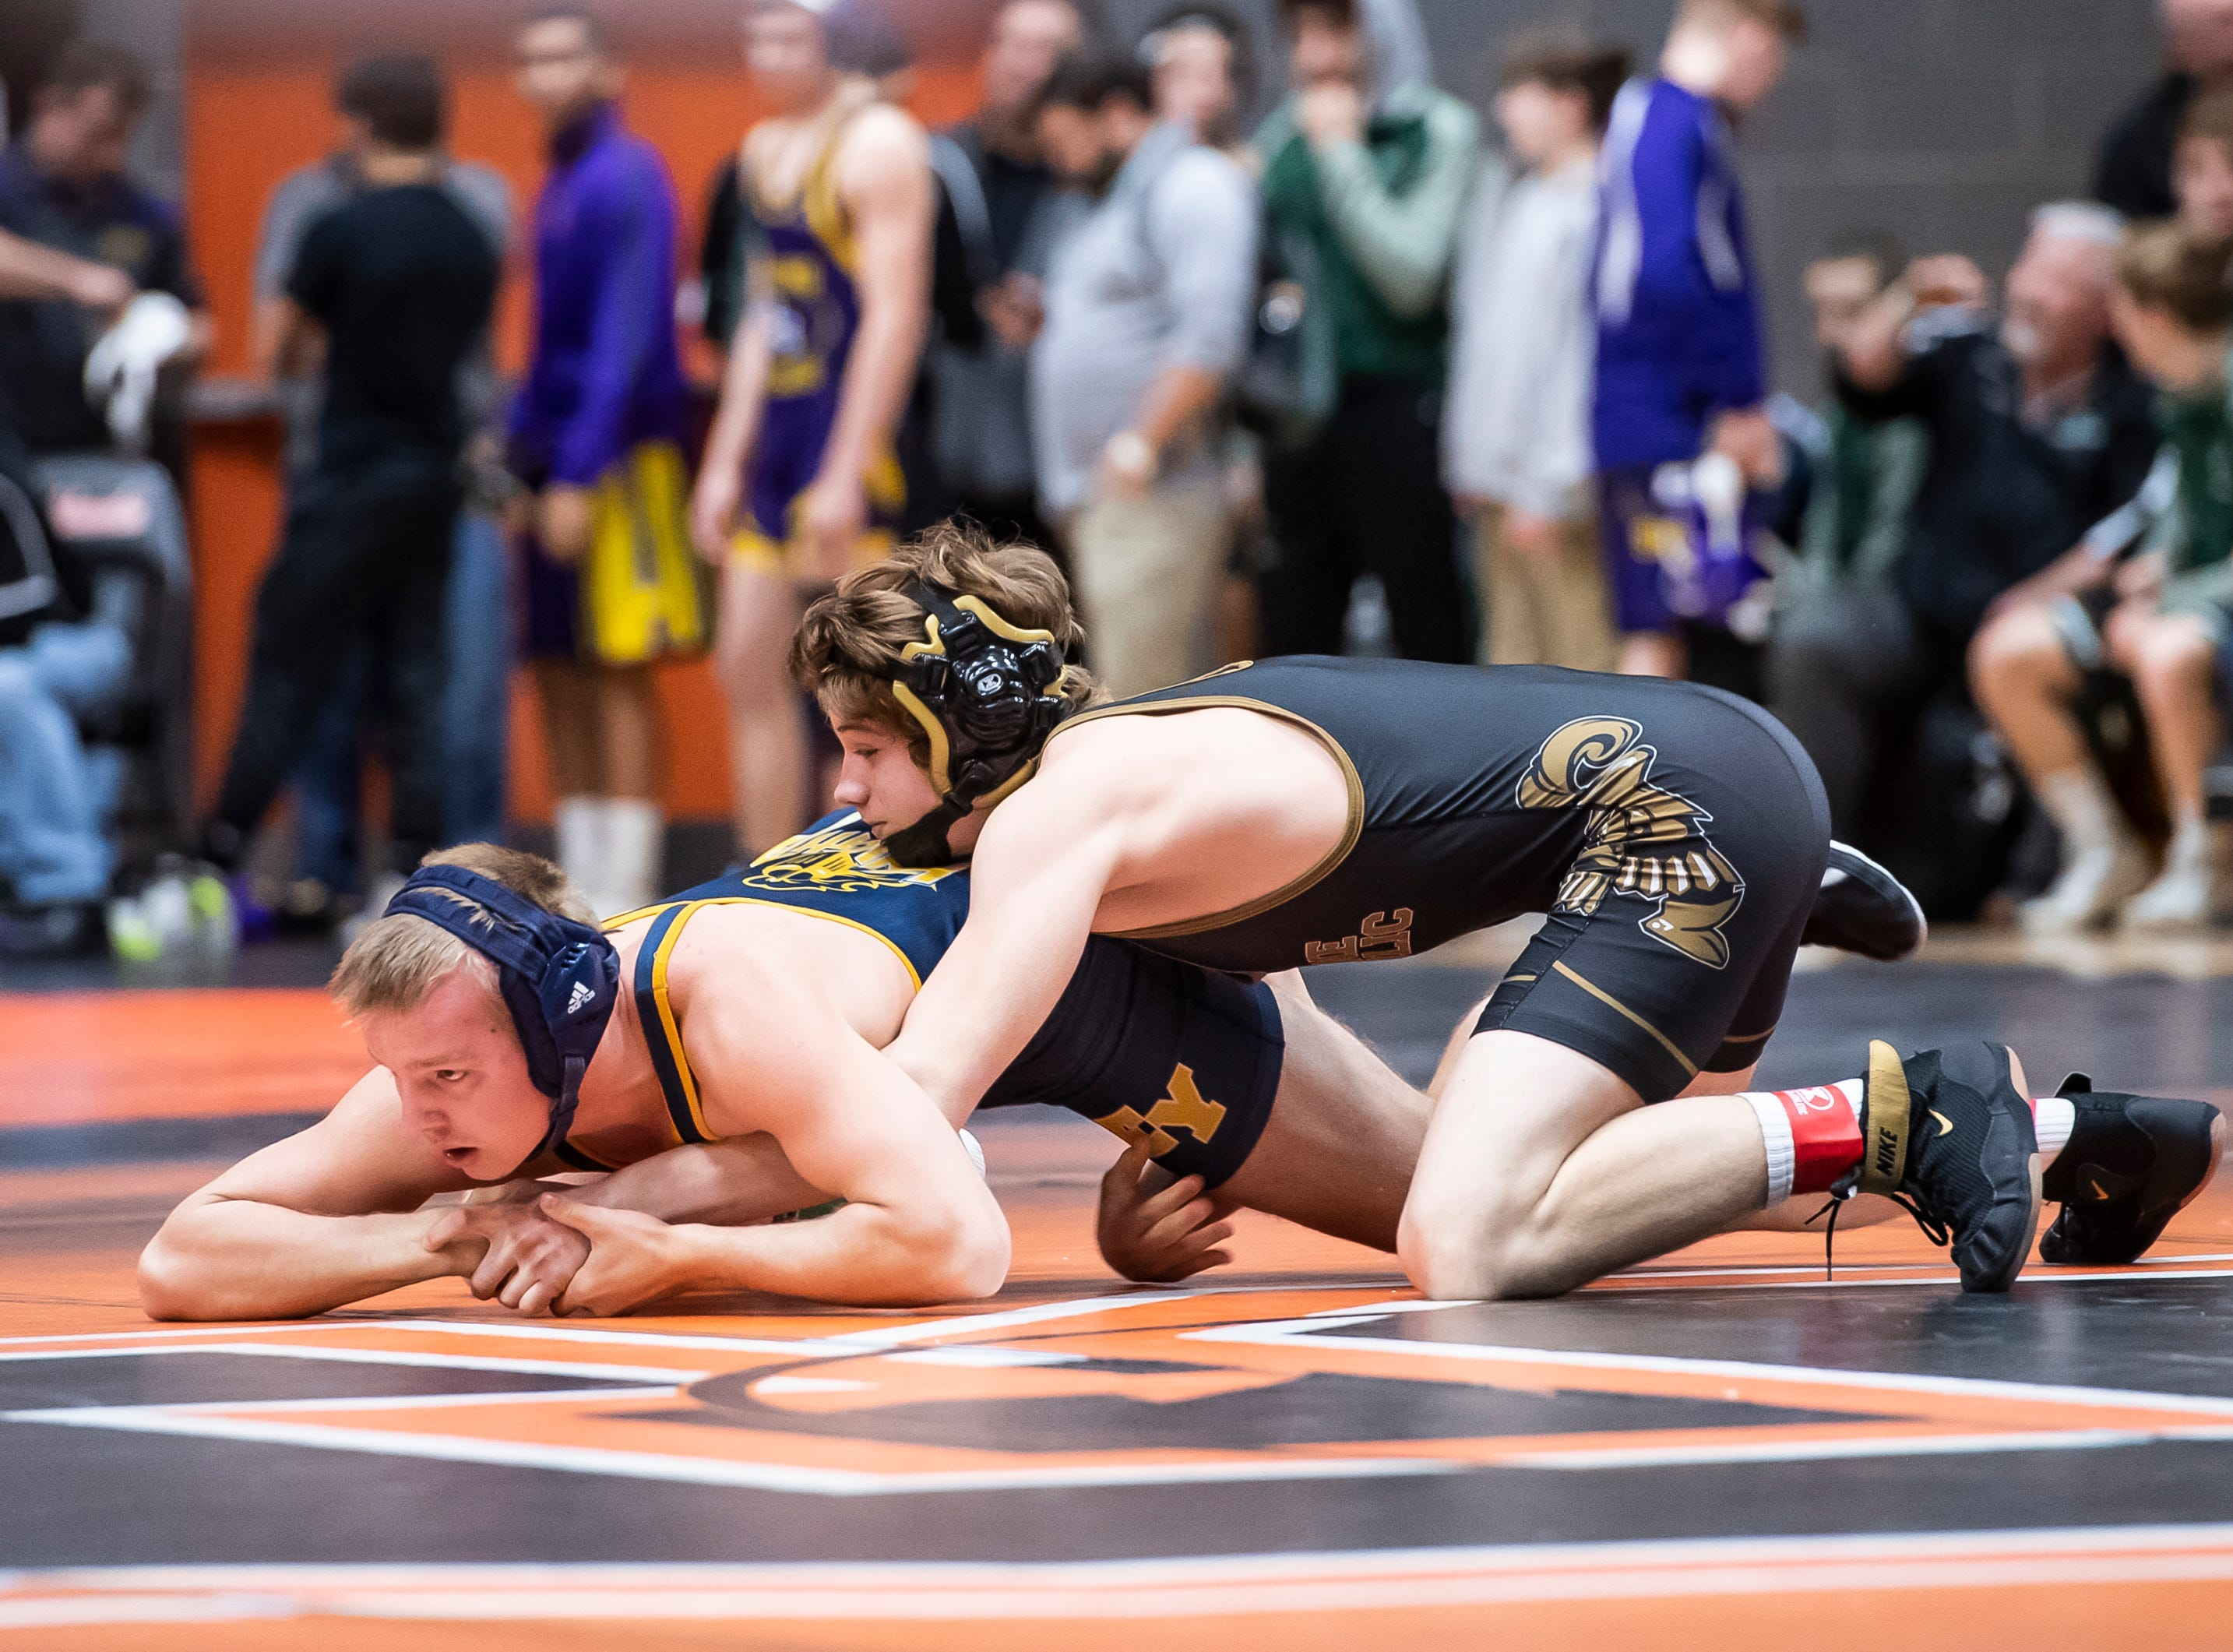 Delone Catholic's Tate Neiderer, tops, wrestles Eastern York's Jonah Dougherty during a 145-pound bout during the first day of the District 3 Class 2A Section I tournament at Susquenita High School Friday, February 15, 2019. Neiderer won by major decision, 9-1.